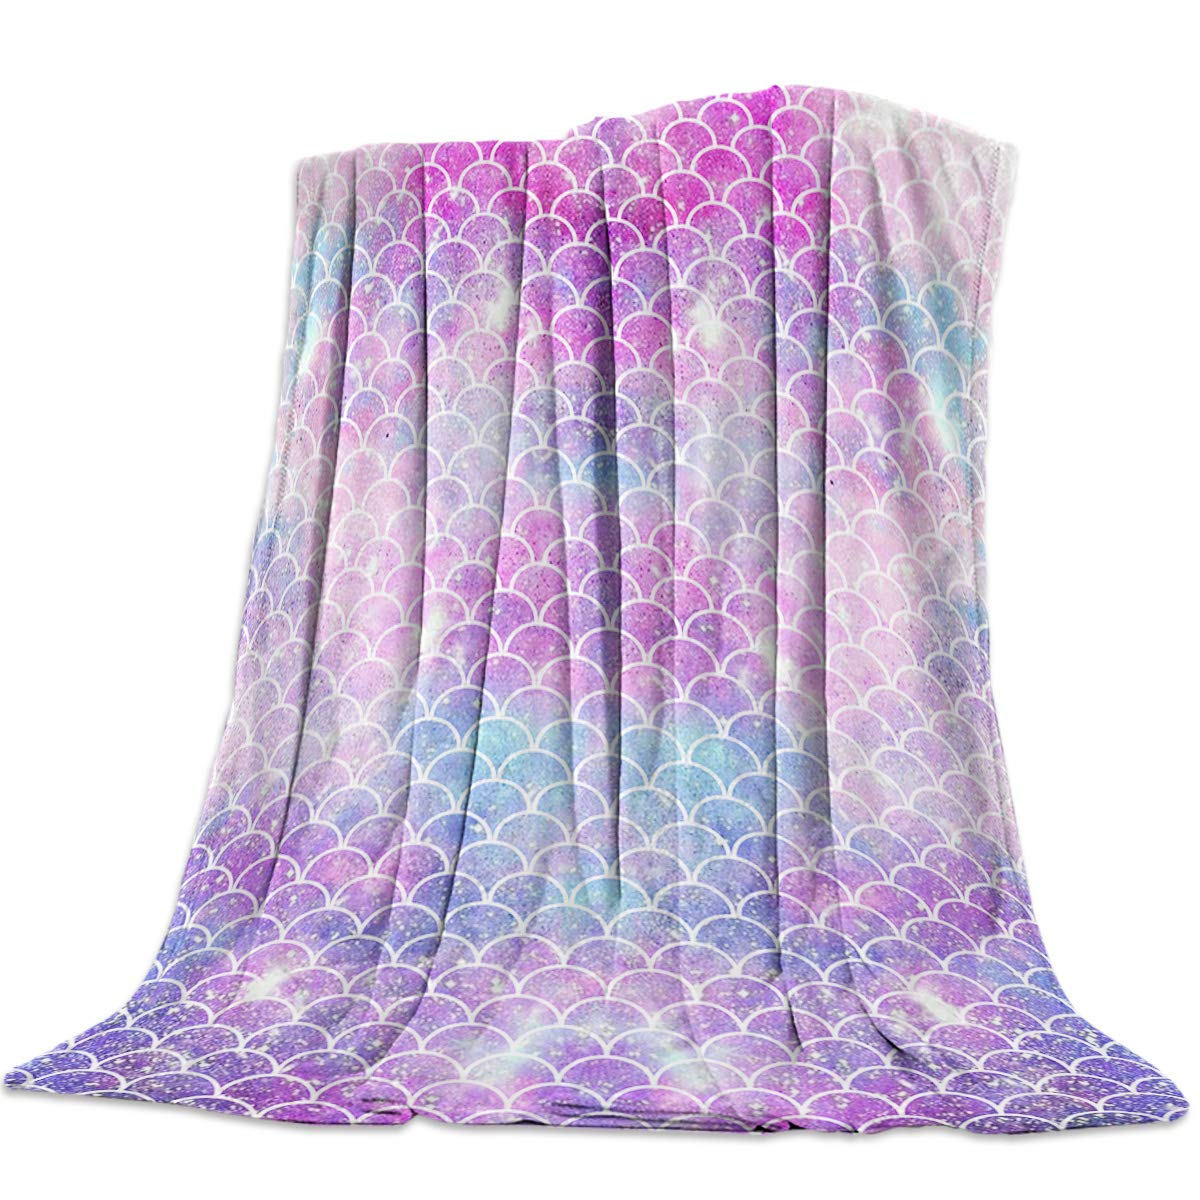 T&H Home Artistic Blanket, Ombre Beauty Mermaid Fish Scale Soft Flannel Fleece Bedding Blanket for Couch, Throw Blanket for Cover Men Women Aults Kids Girls Boys 60''x80''